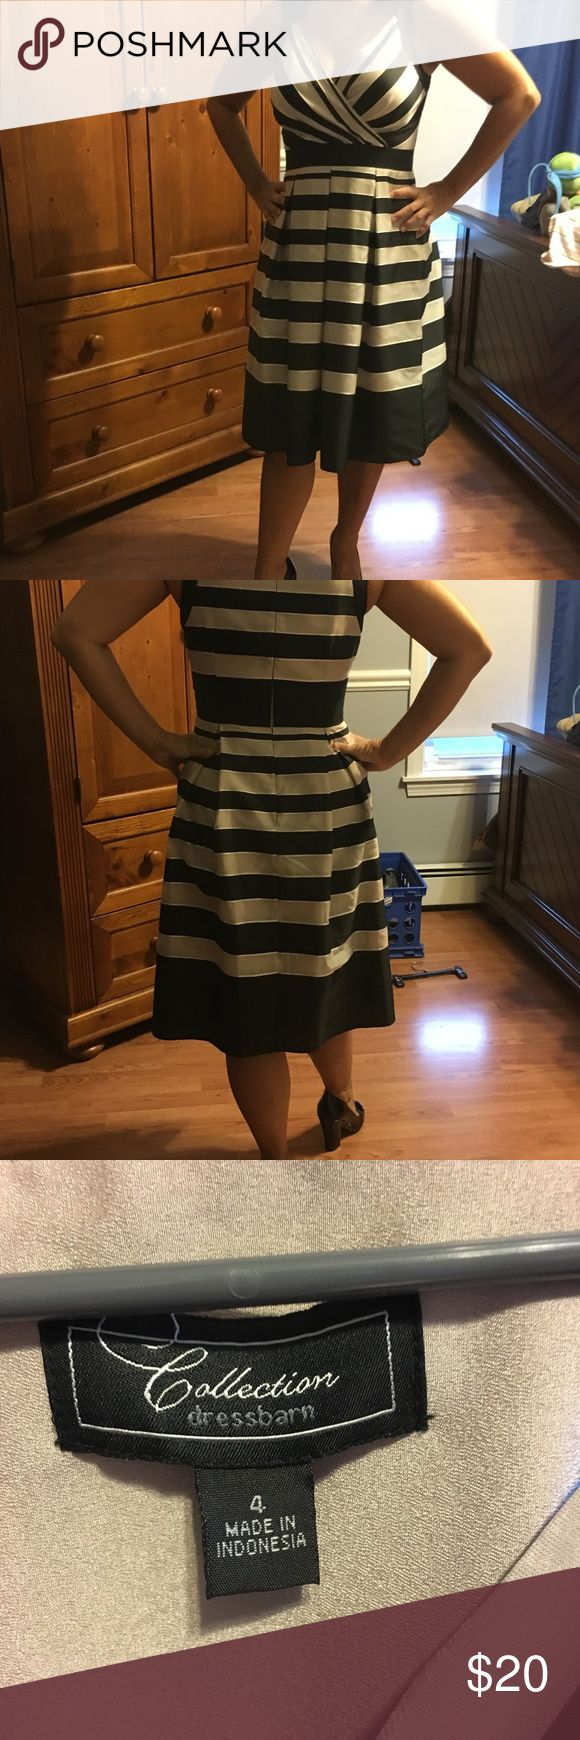 Beautiful like new Black/beige lined dress Beautiful Black/beige dress worn once for a wedding flattering style machine wash fully lined shoes for sale bundle for a deal.  Washed some slight discoloration under arm area from deodorant see pics not noticeable when on I'm 5'1 hit just below the knee Dress Barn Dresses Midi